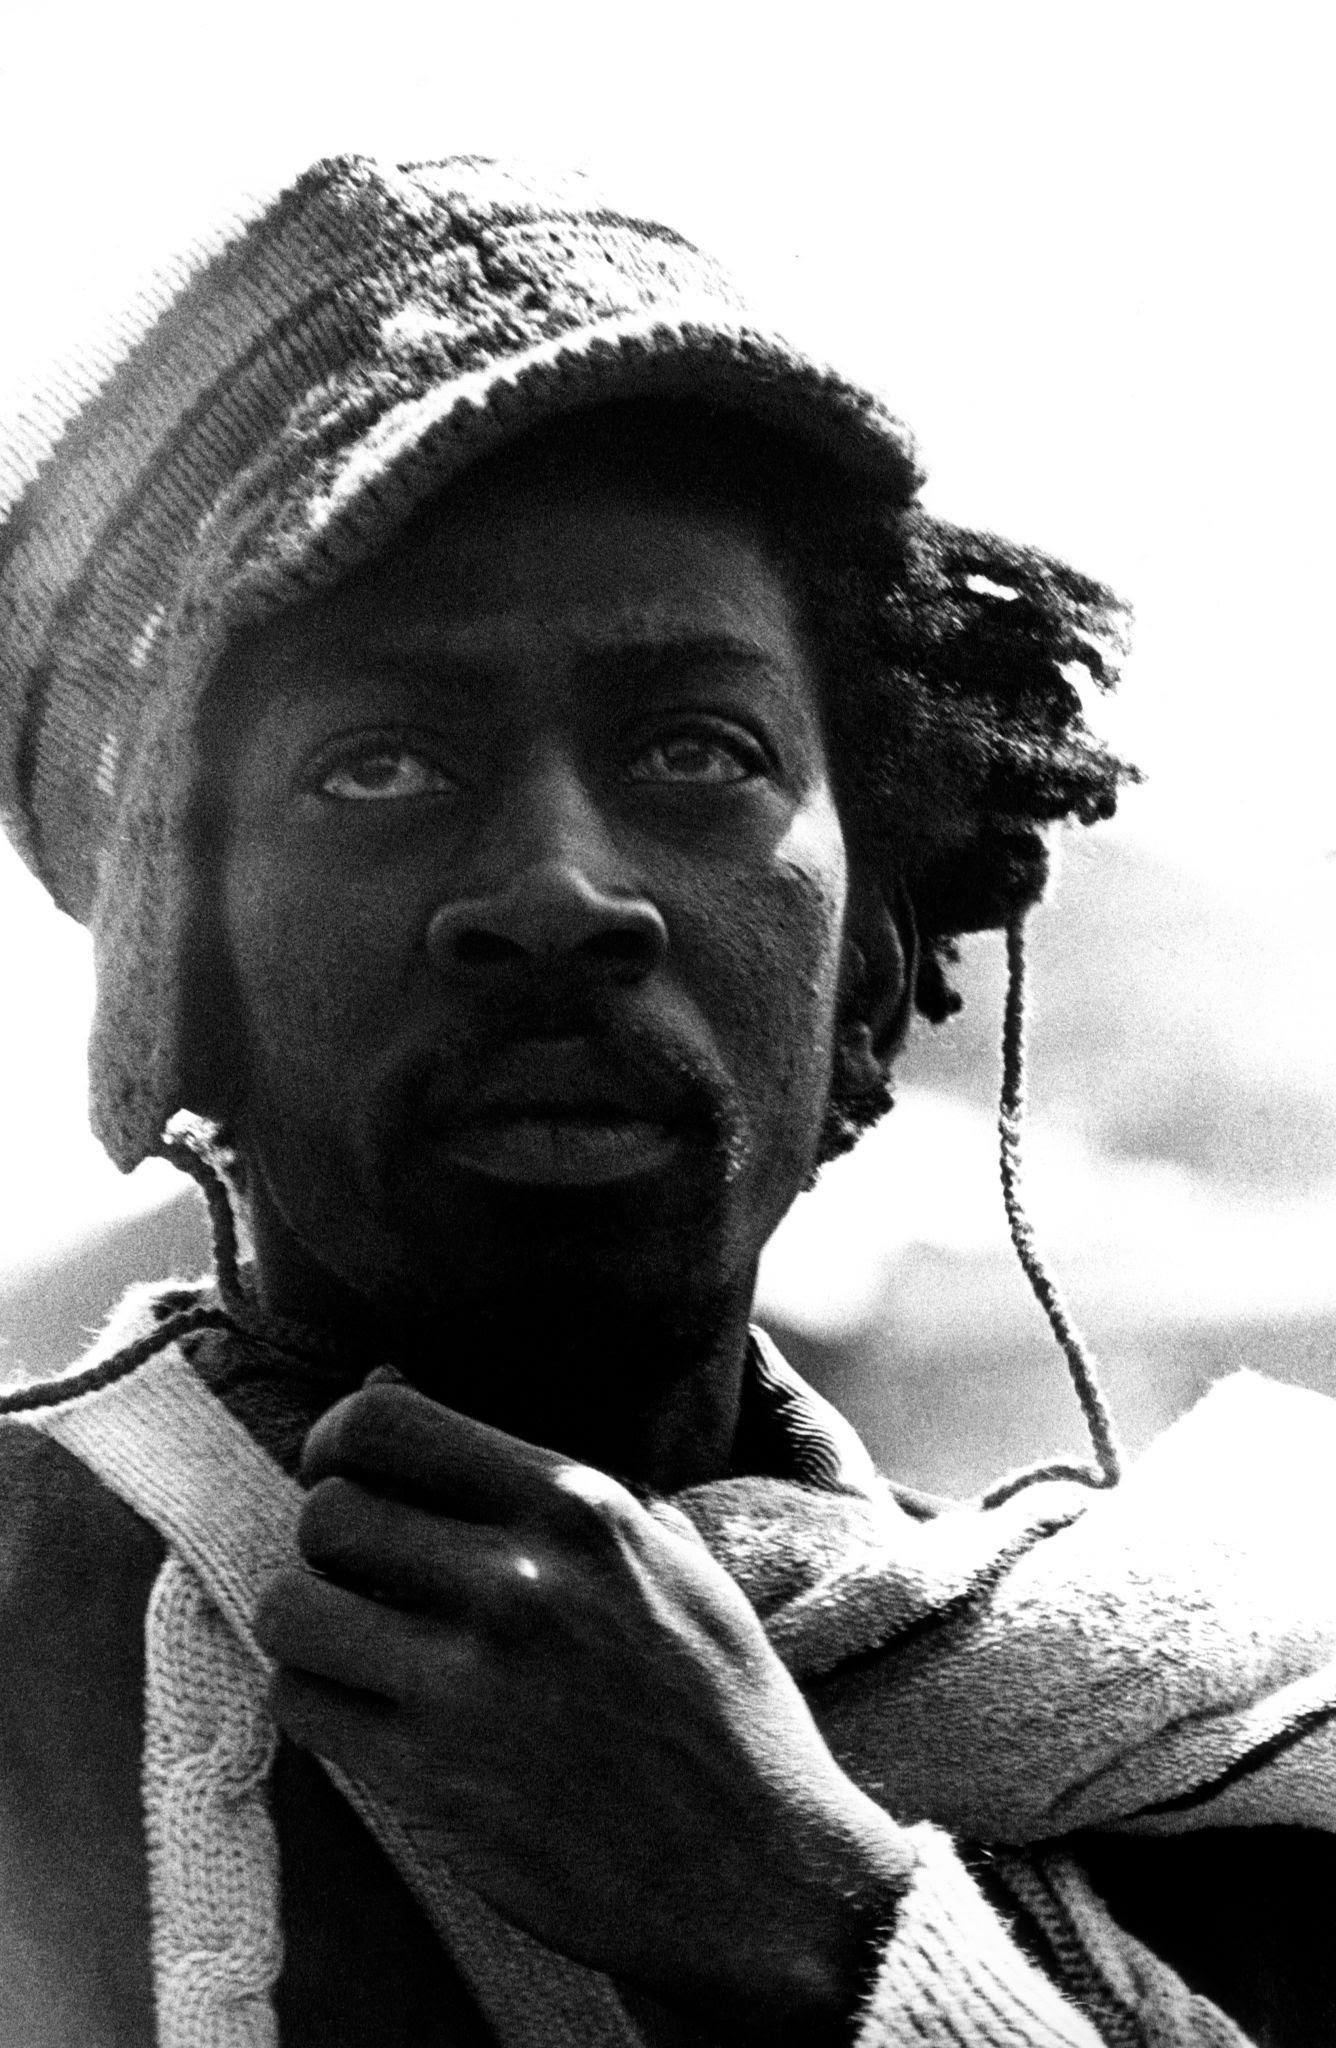 Song of the Day 29: Bunny Wailer 1947-2021